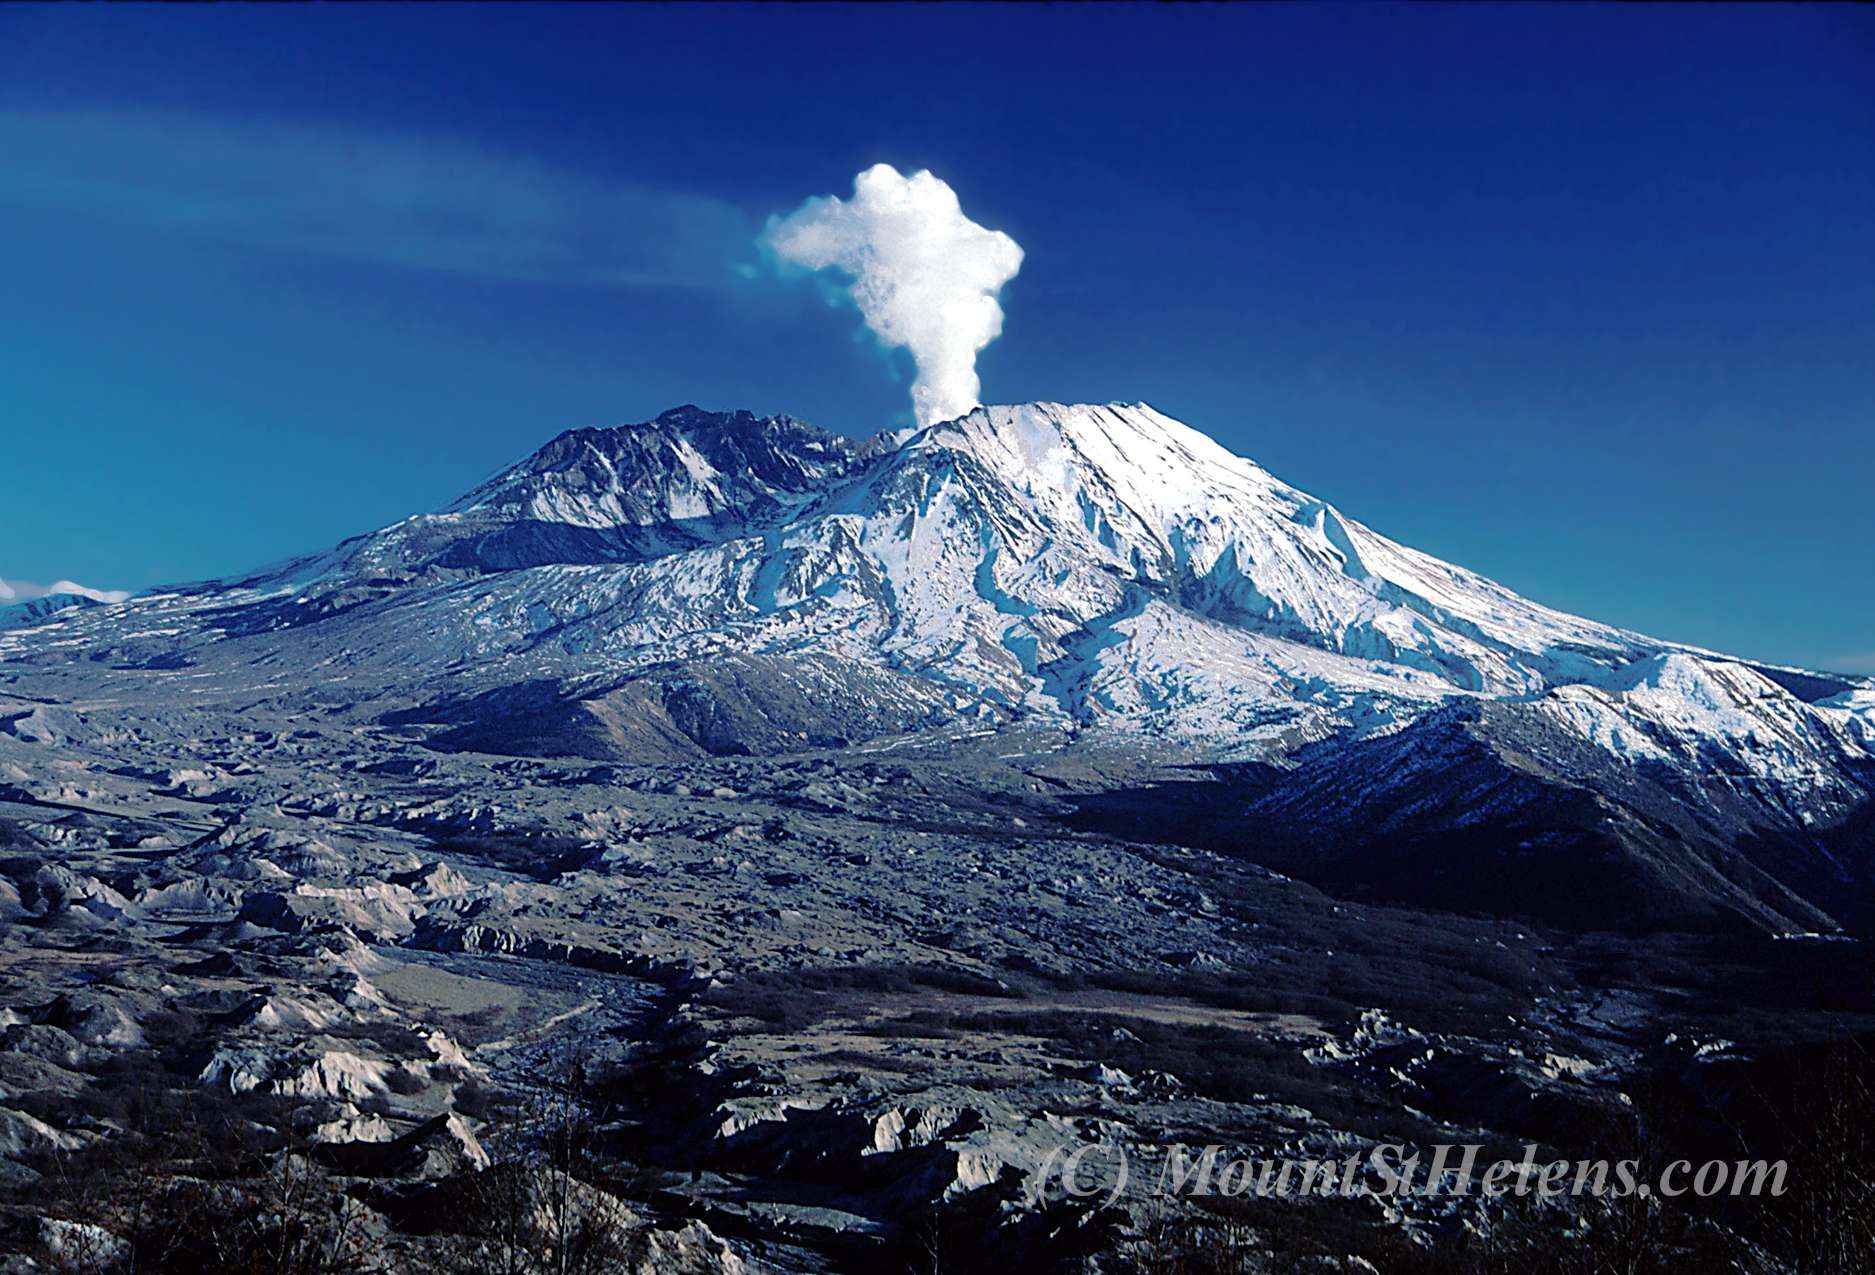 Mount Saint Helens Helicopter Tours